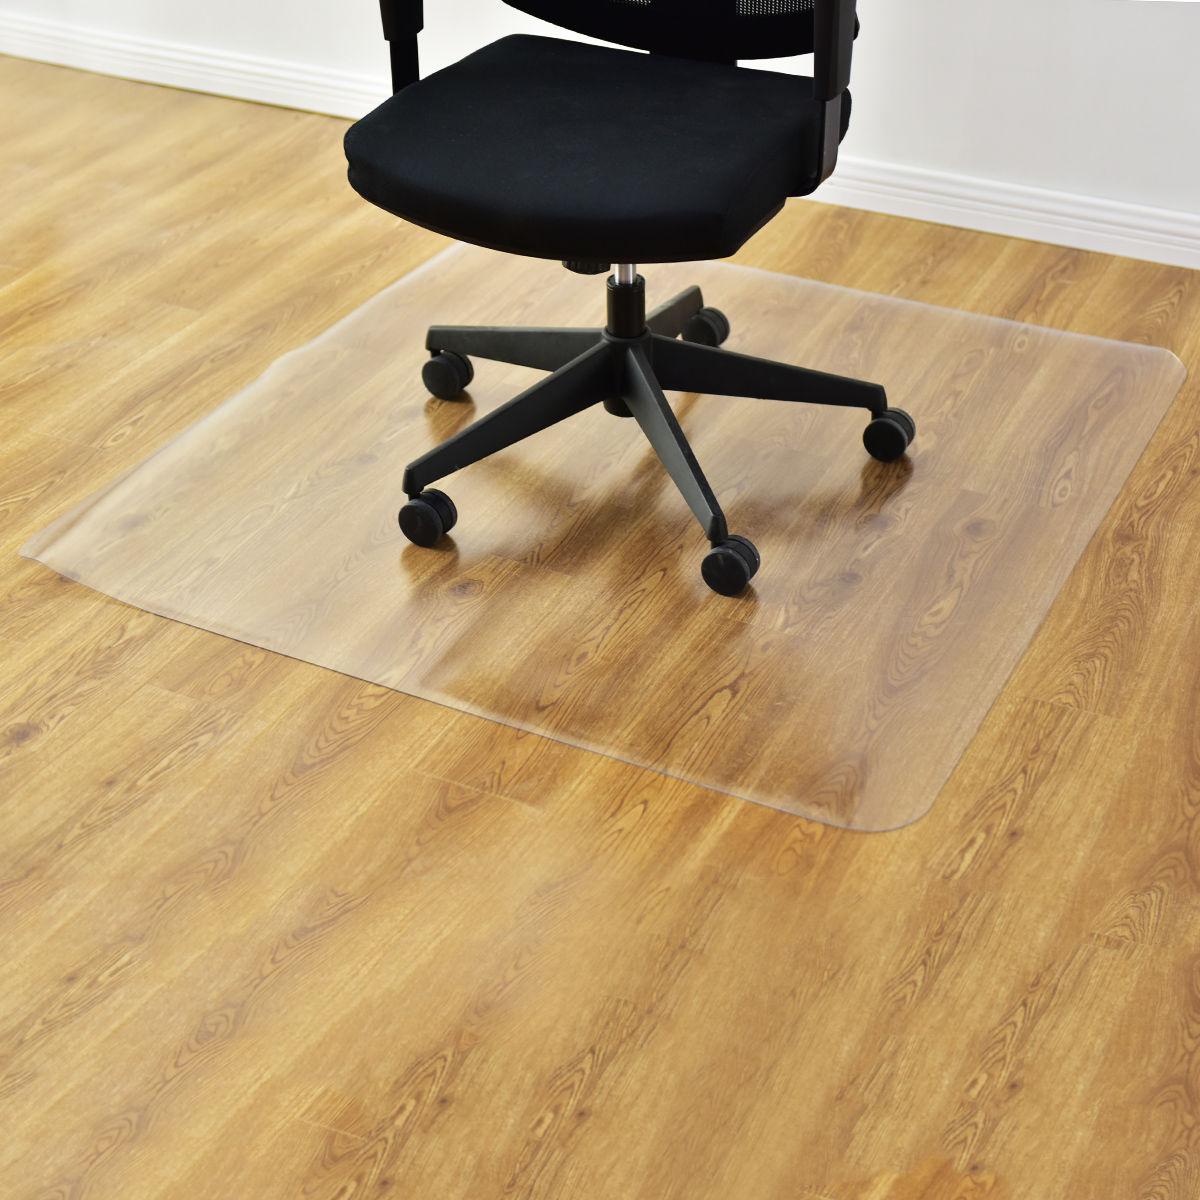 Home Office 59x48Protect Hard Floor PVC Mat Square Rolling Chair